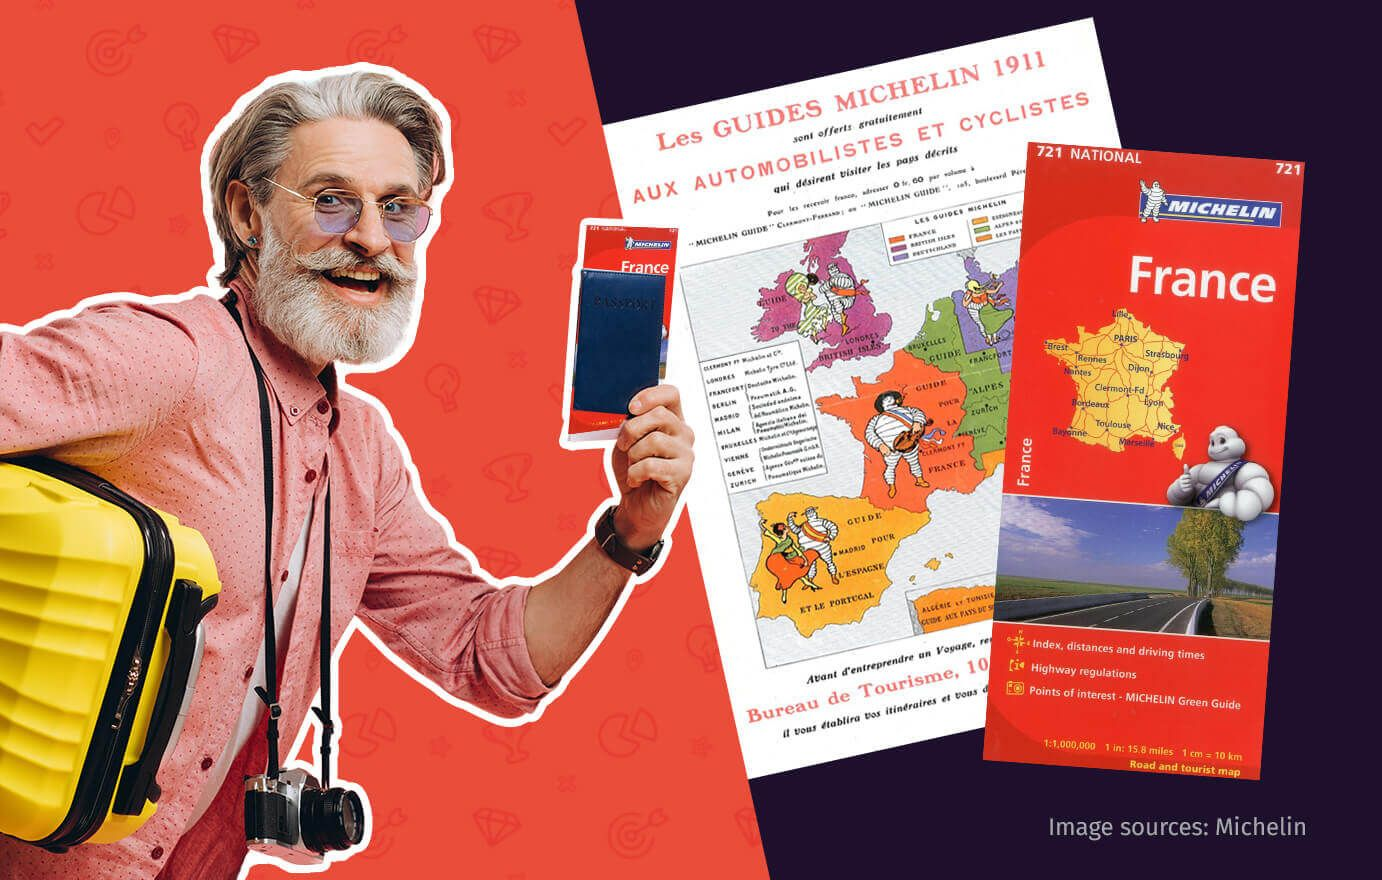 Michelin maps and guides as another historical examples of content-based marketing